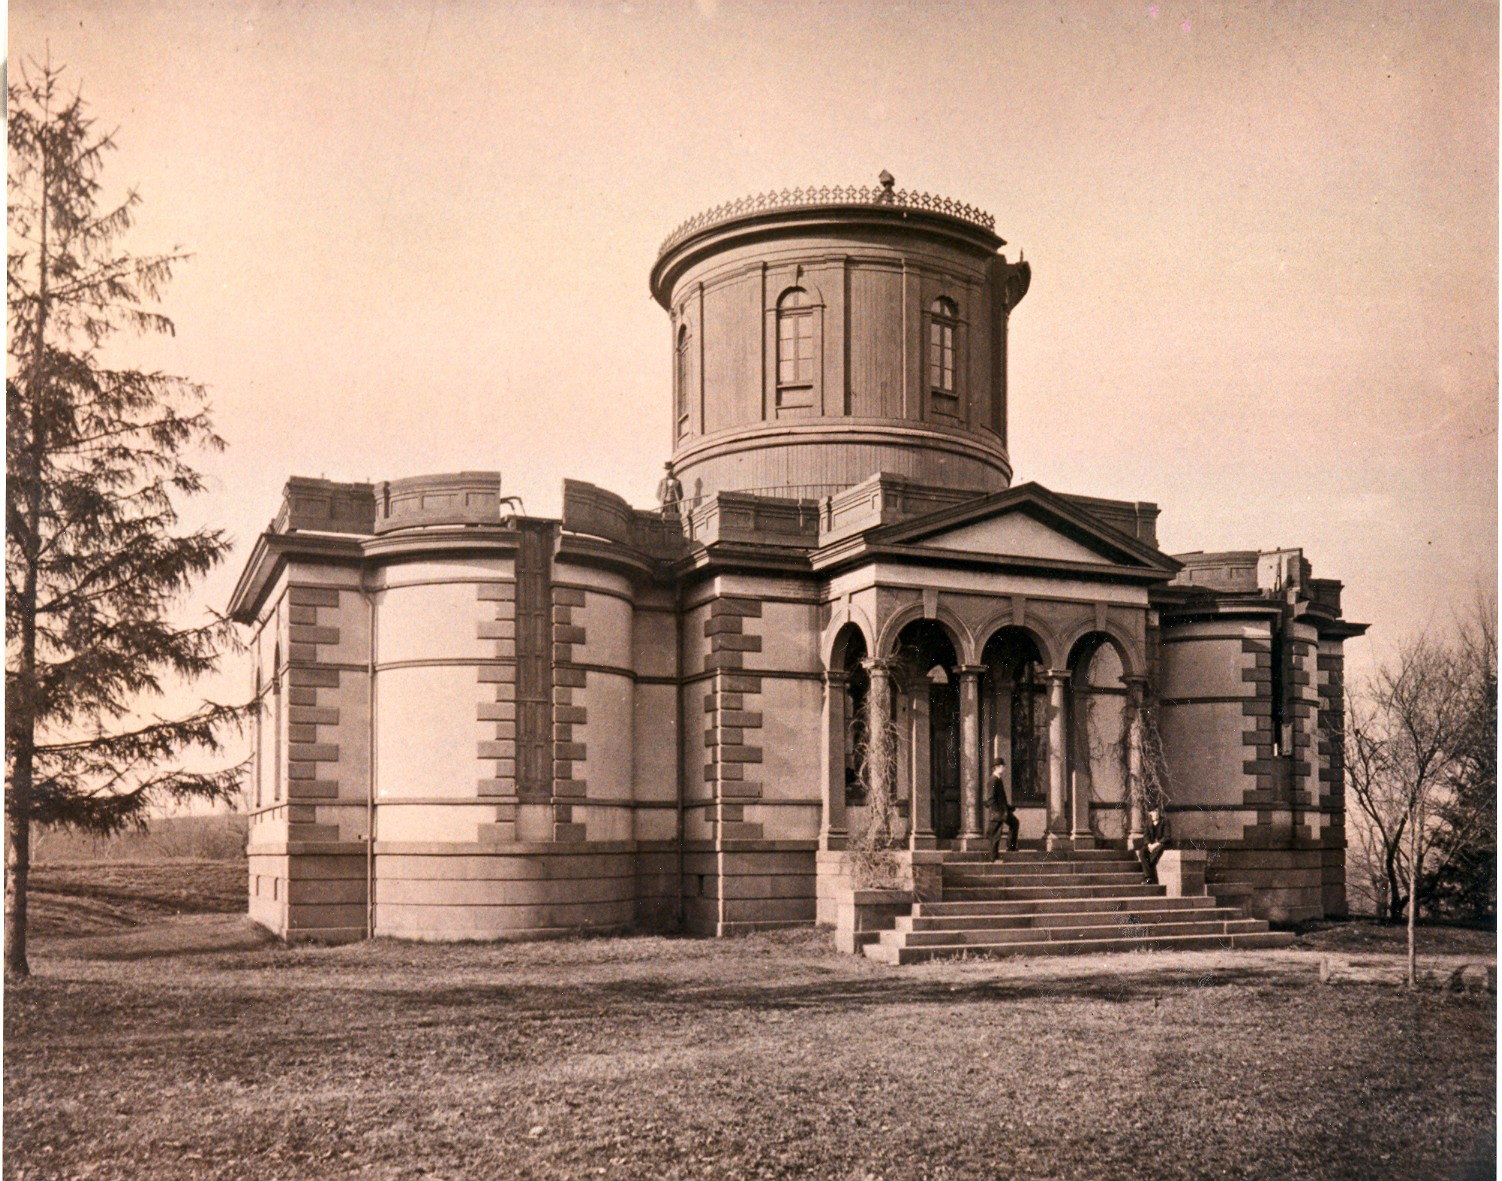 Dudley Observatory in Albany, New York